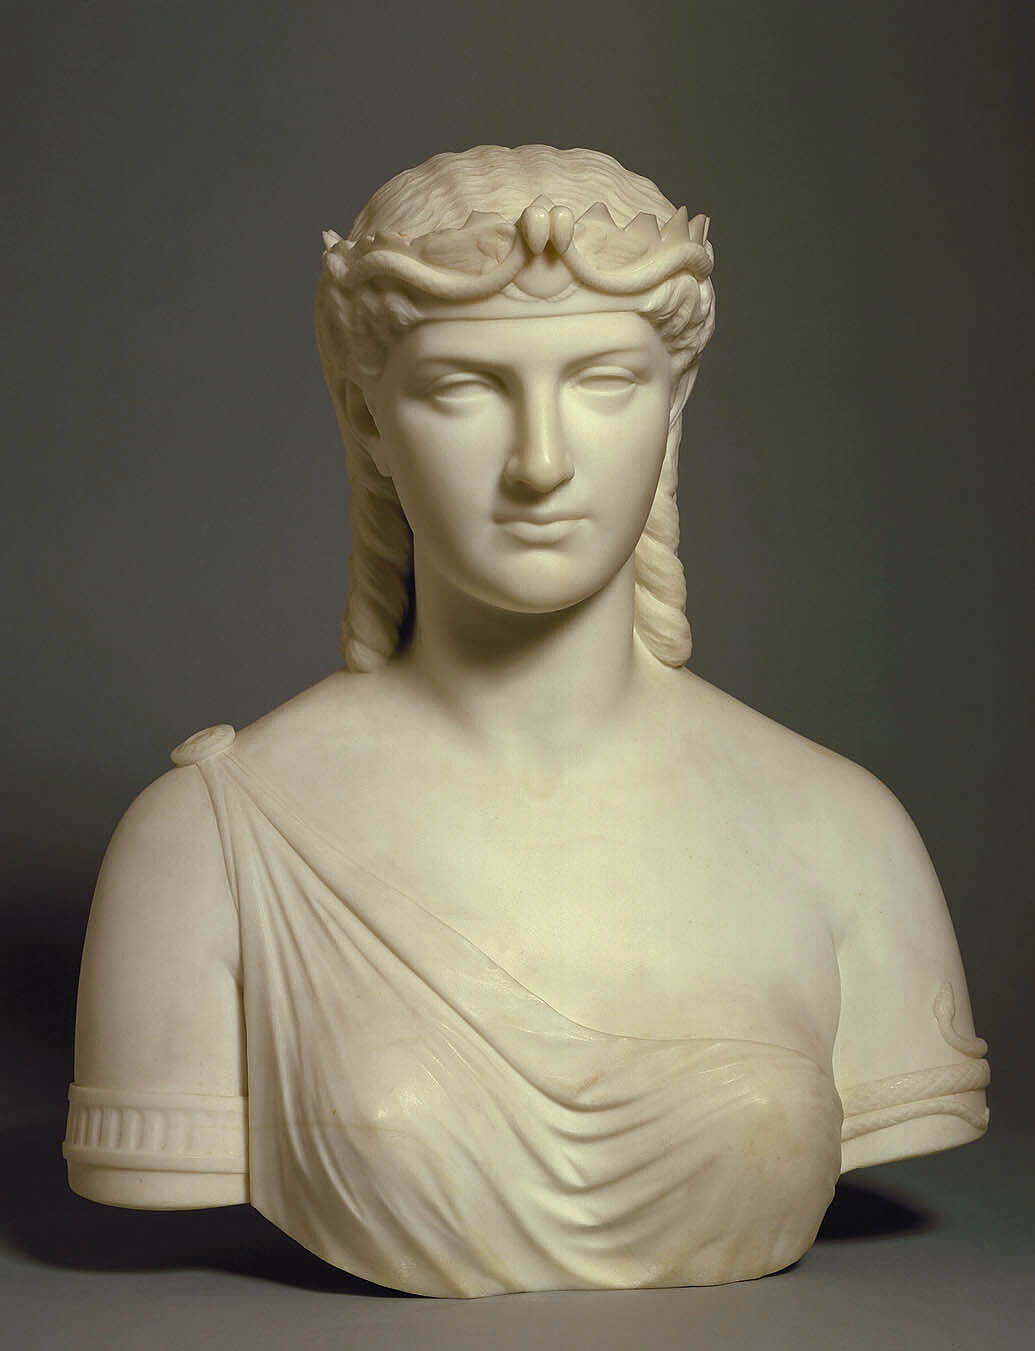 Margaret Foley, Cleopatra, 1871-1876. Courtesy of the Smithsonian American Art Museum.